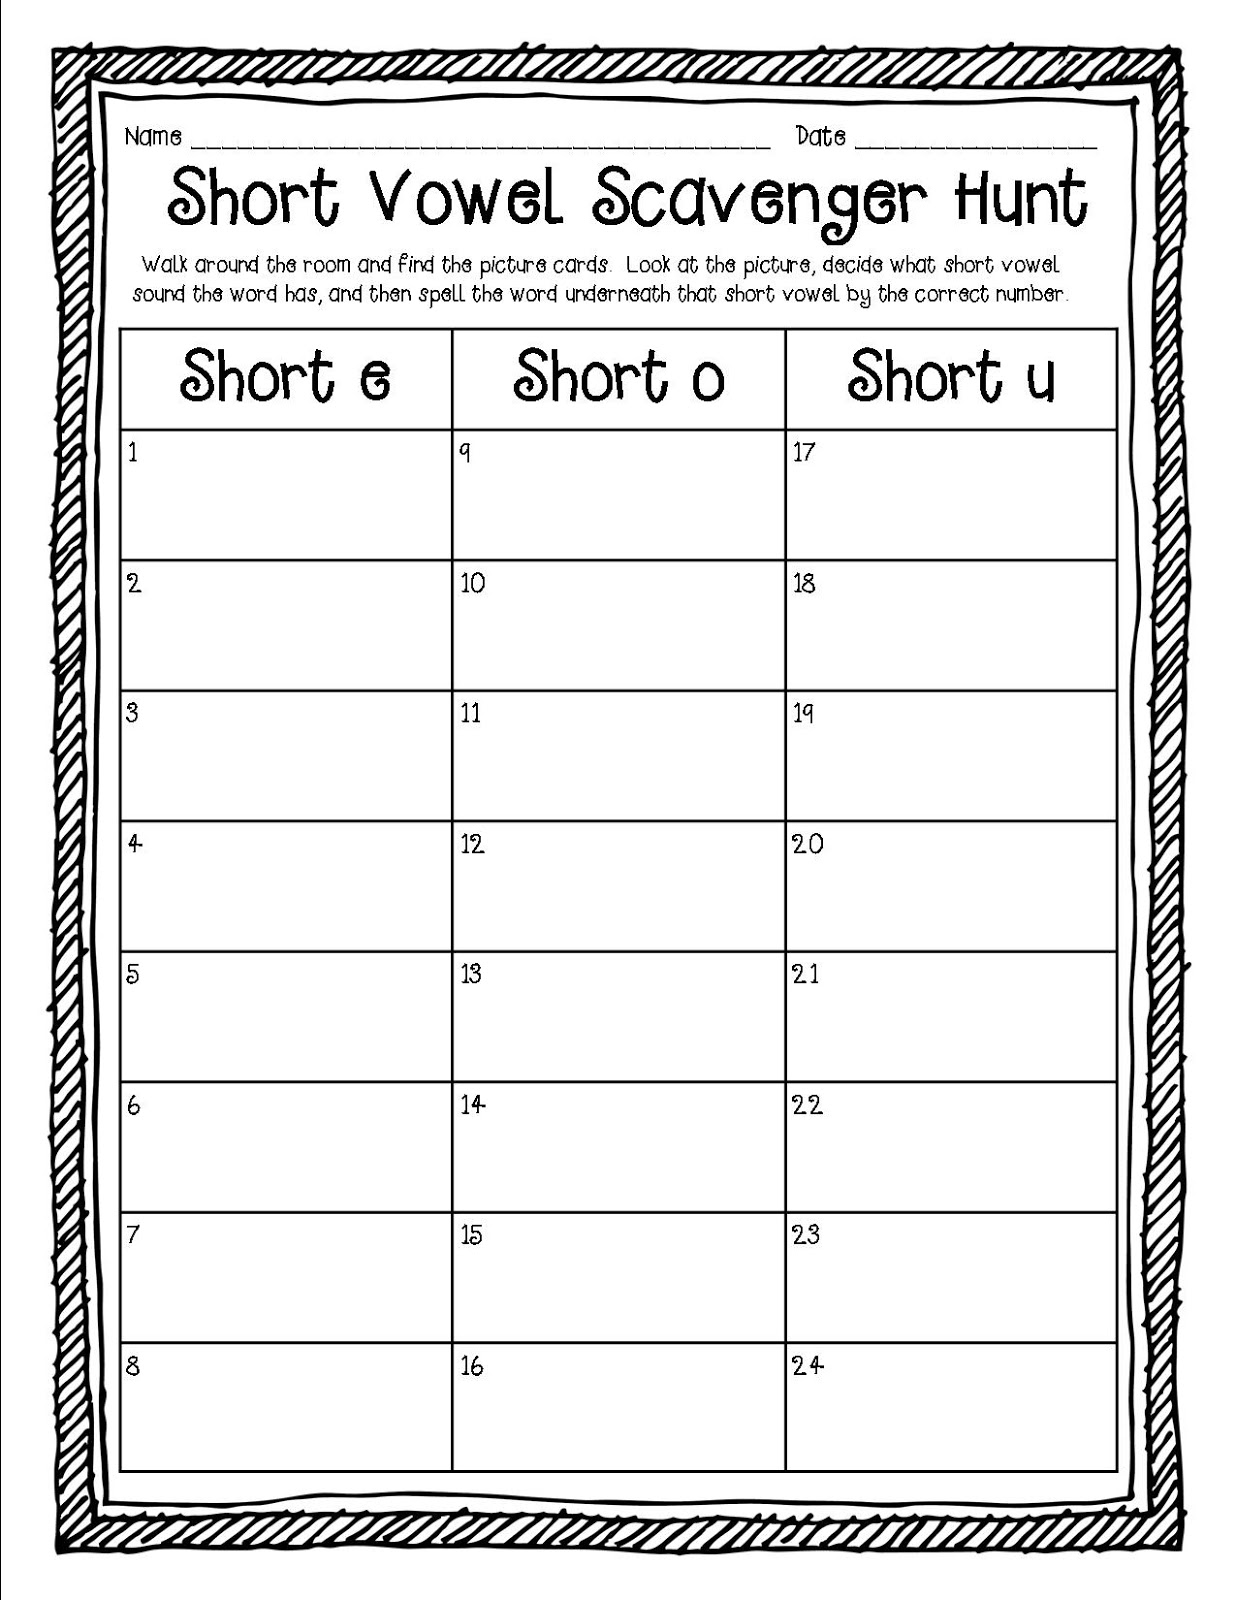 How To Write A Short A Sound